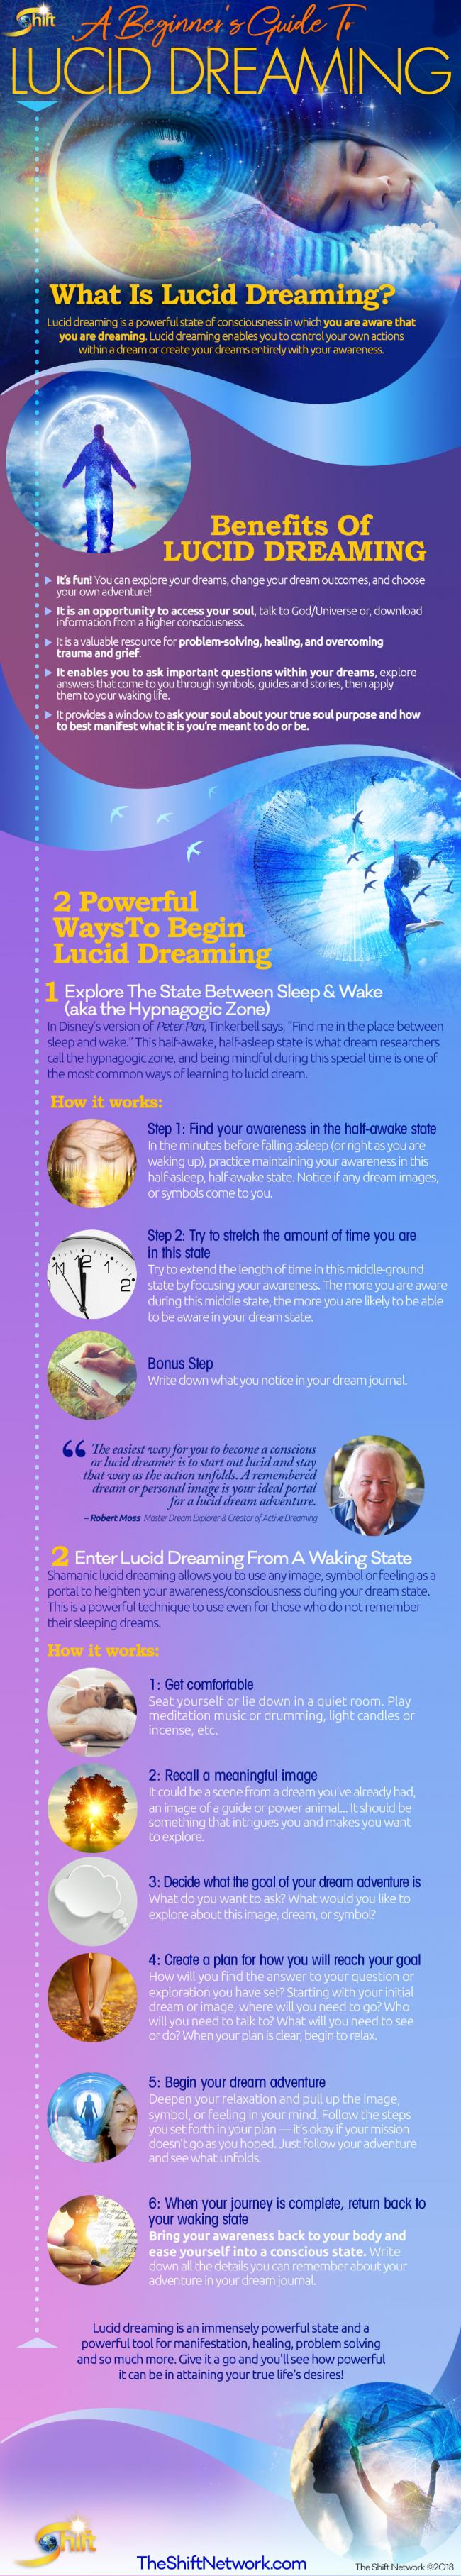 Infographic] A Beginner's Guide to Lucid Dreaming | The Shift